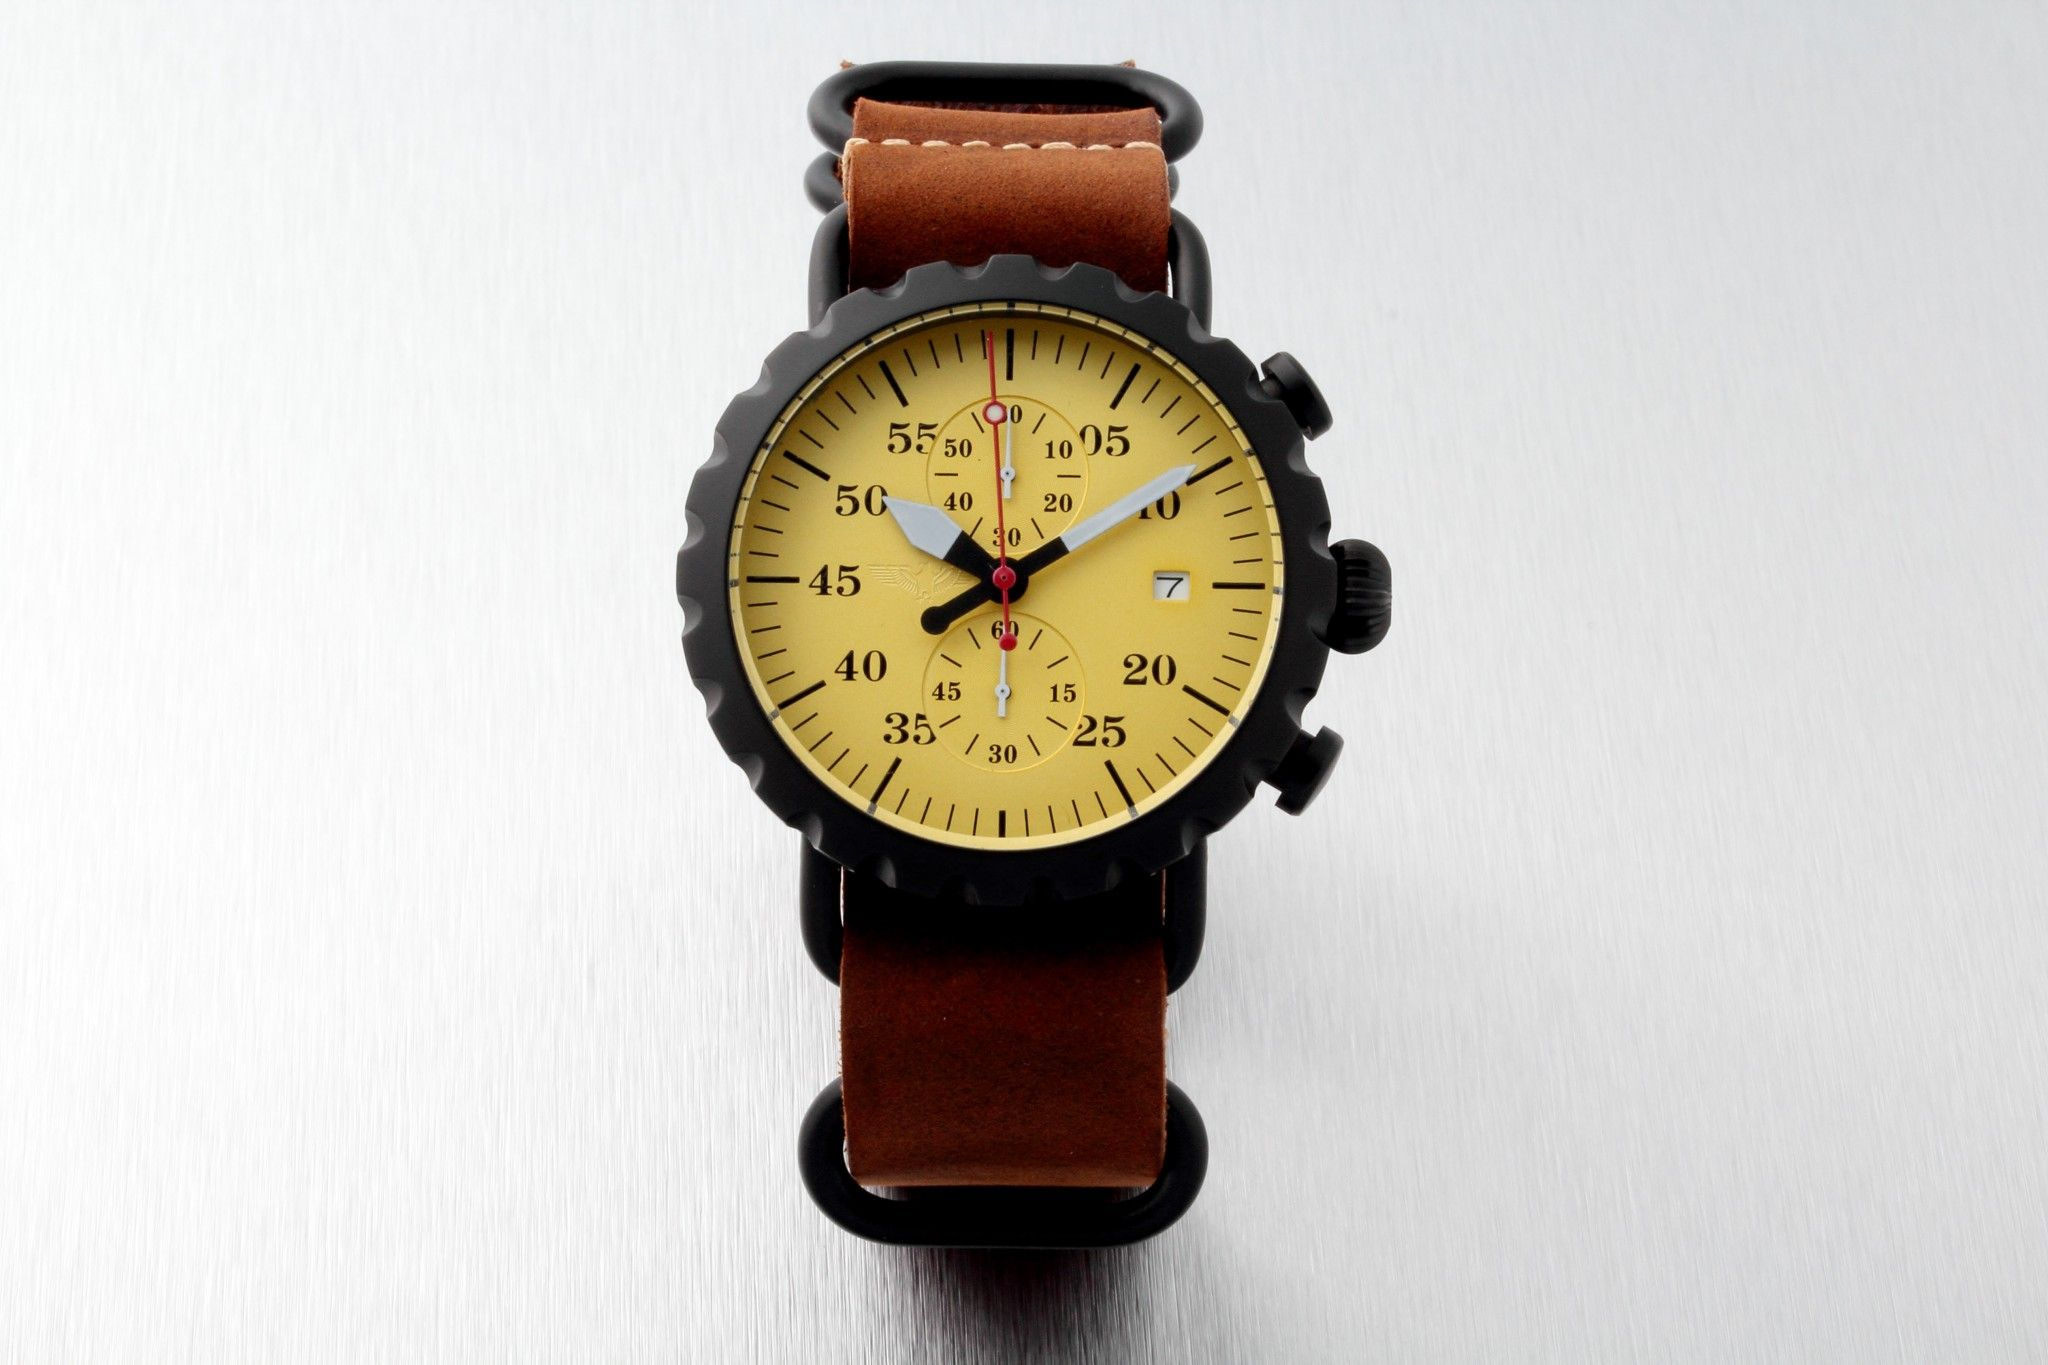 Genesee Watch Co Peregrine Squadron pilot chronograph aviator watch with Tokki…